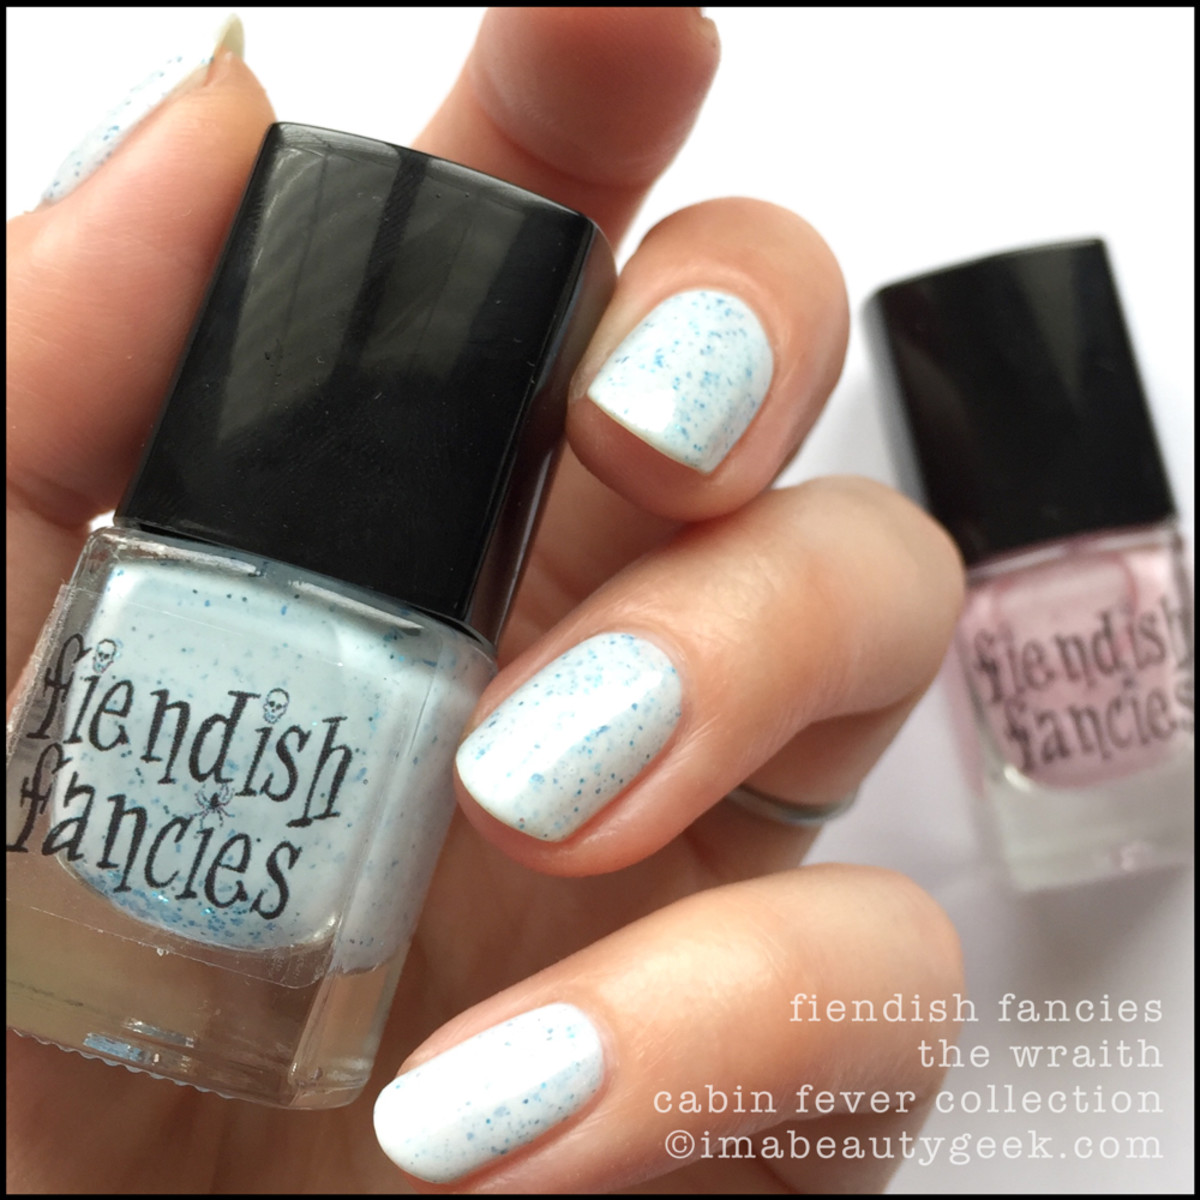 Fiendish Fancies The Wraith_Fiendish Fancies Cabin Fever Collection Swatches